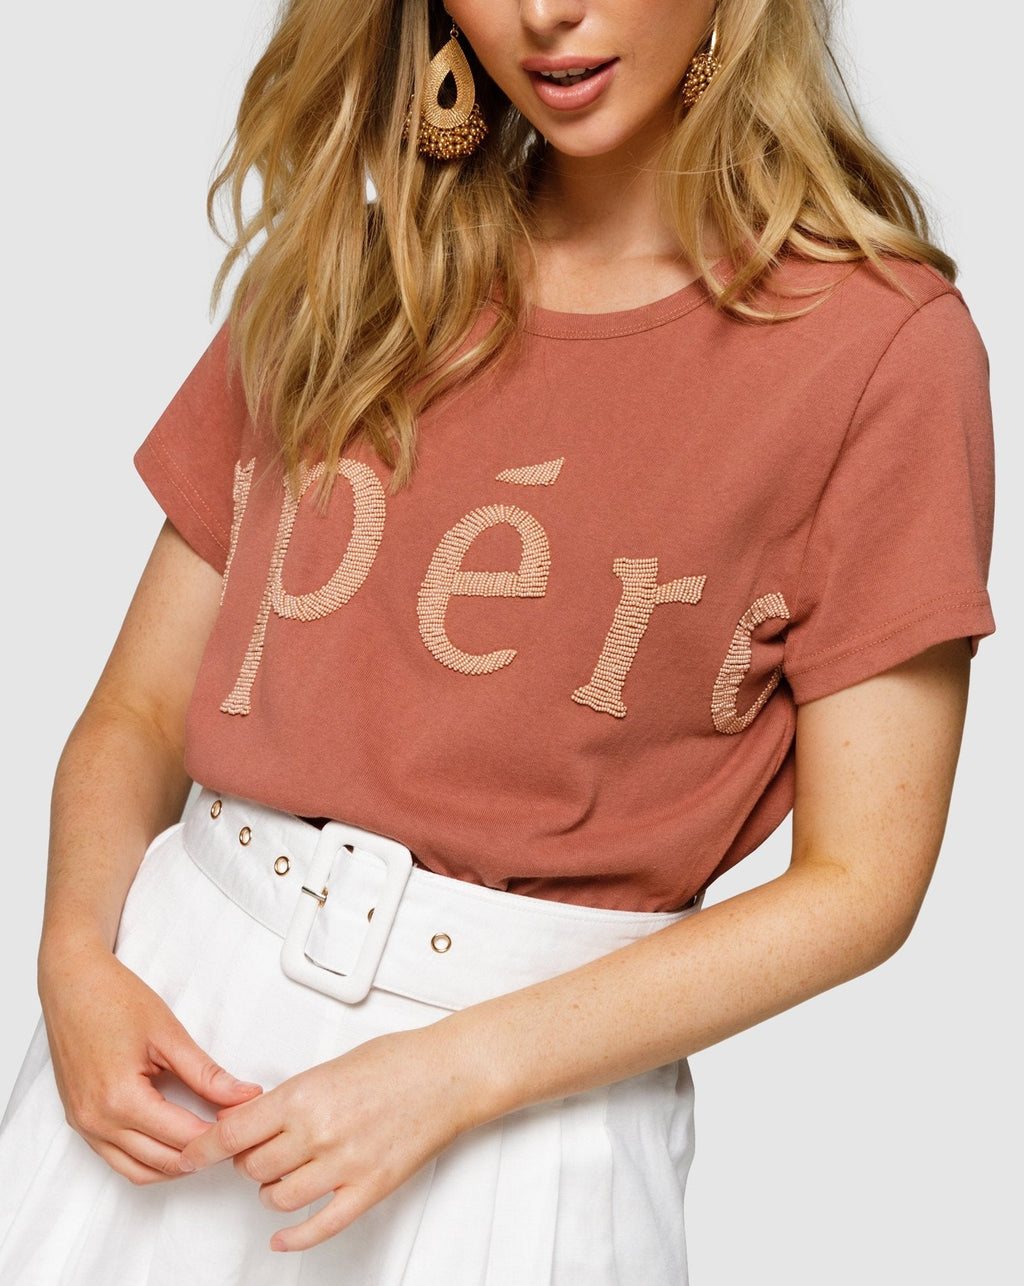 Apéro Forte Beaded Femme Tee - Burnt Rose/Beige Bead